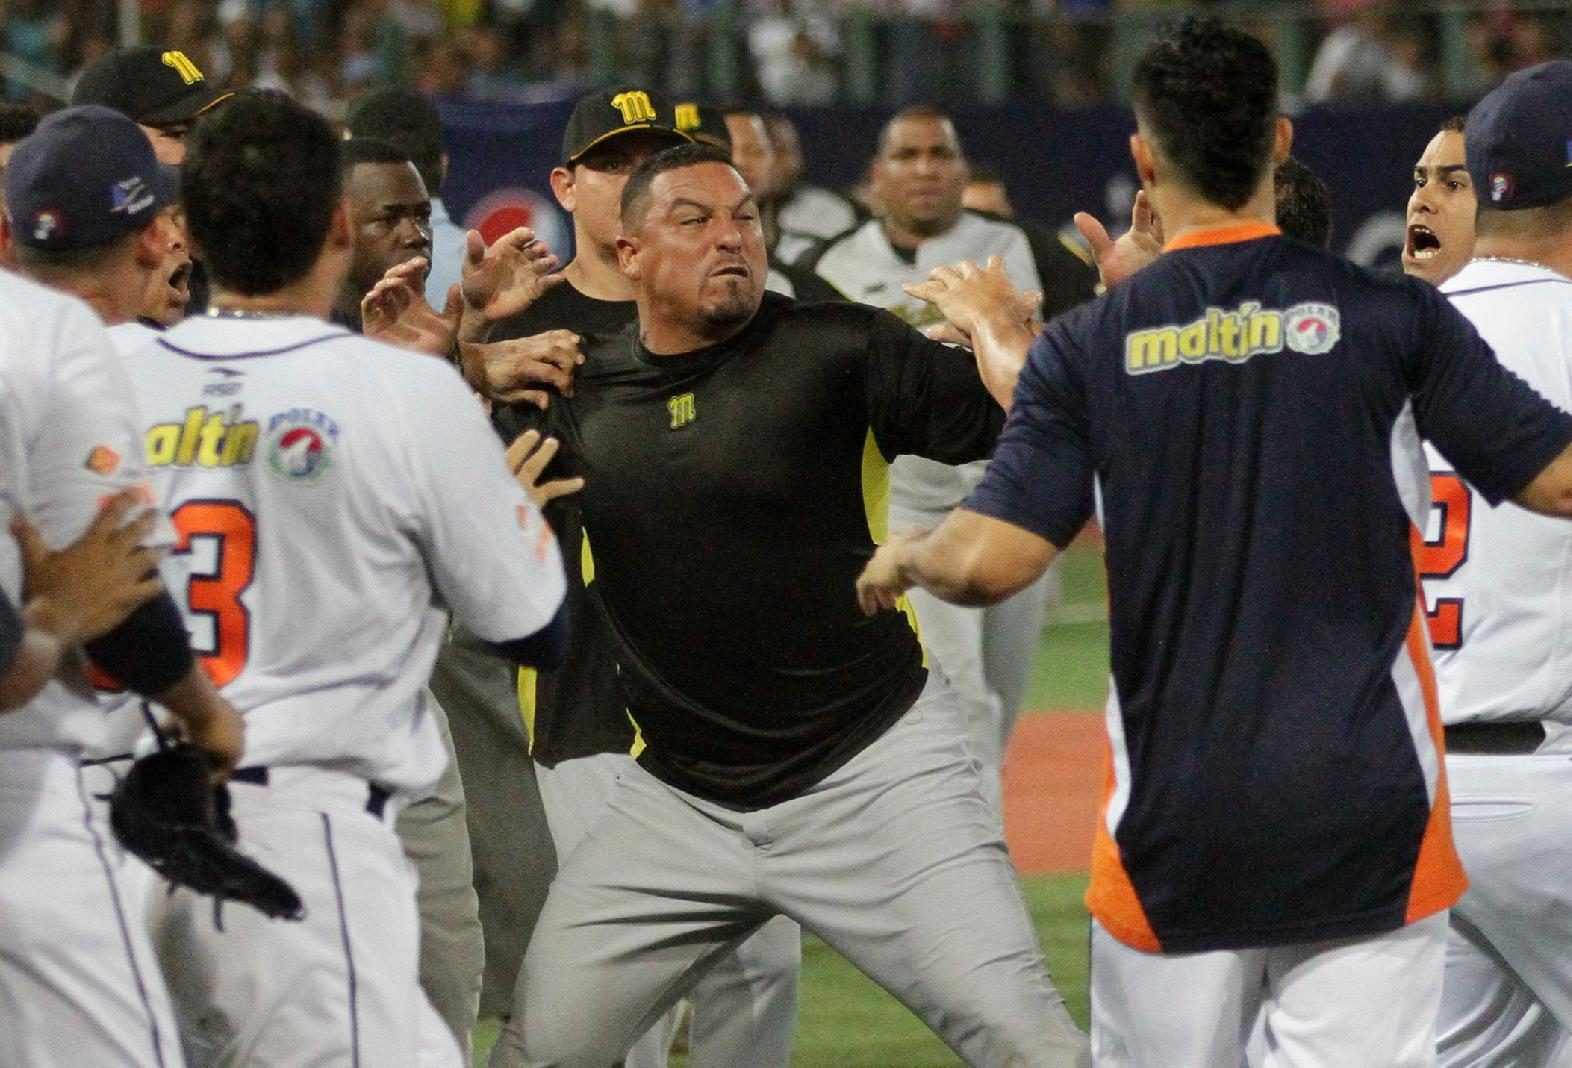 In this photo taken on Saturday, Jan 25, 2014. Venezuela former major league pitcher Carlos Zambrano, center, gestures during a brawl at the third game of the Venezuelan Baseball championship final playoff between Magallanes from Valencia and Caribes from Puerto La Cruz, in Puerto La Cruz ,Venezuela. Zambrano struck pitcher Mayckol Guiape of the rival Caribes de Anzoategui after teammate Ezequiel Carrera of the Navegantes del Magallanes was hit by a pitch.(AP Photo /Elyxandro Cegarra)